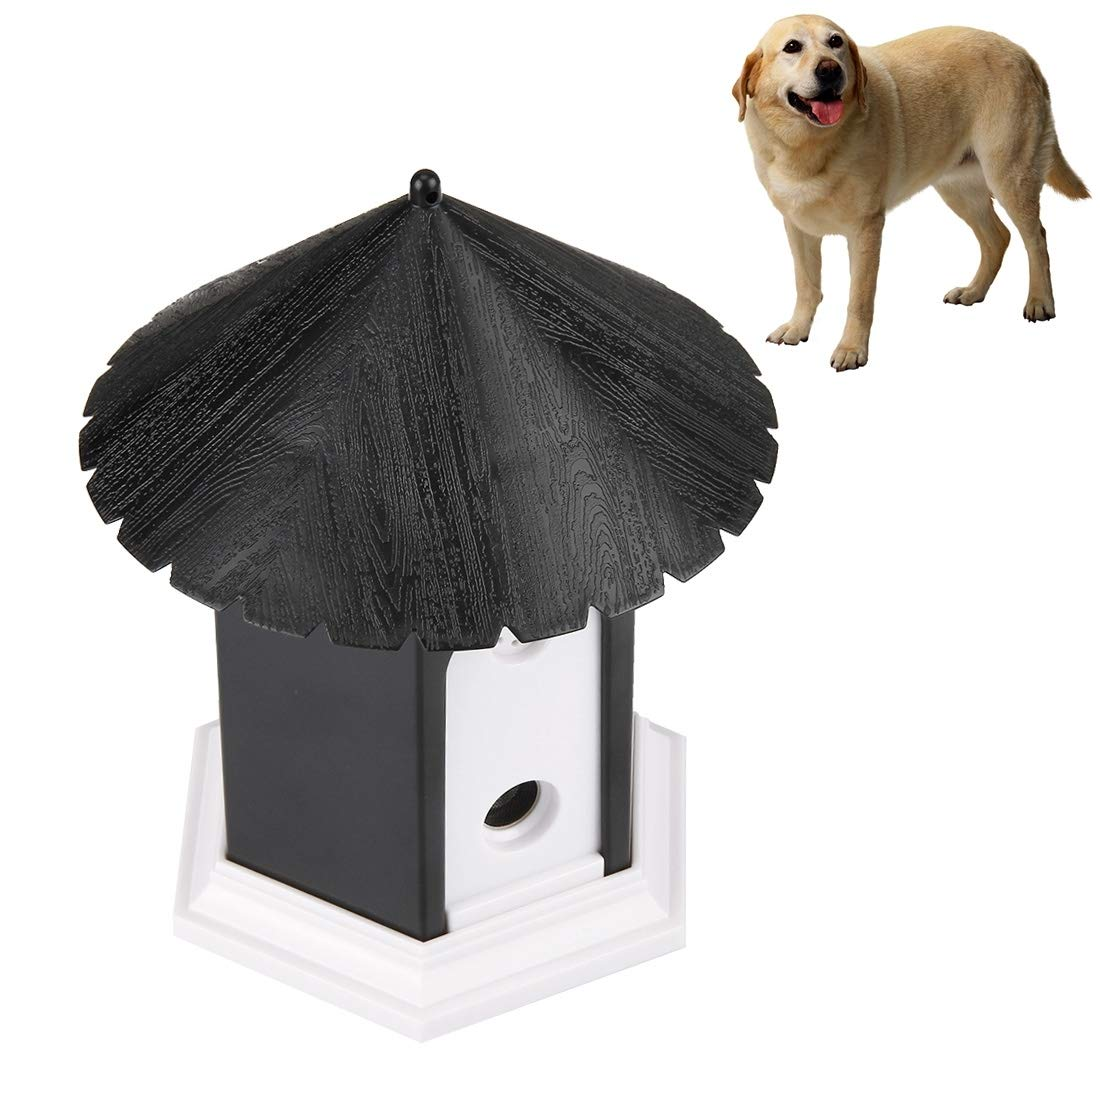 VAXT Lead Removed Pet Dog Outdoor Bark Control Training House by VAXT (Image #1)